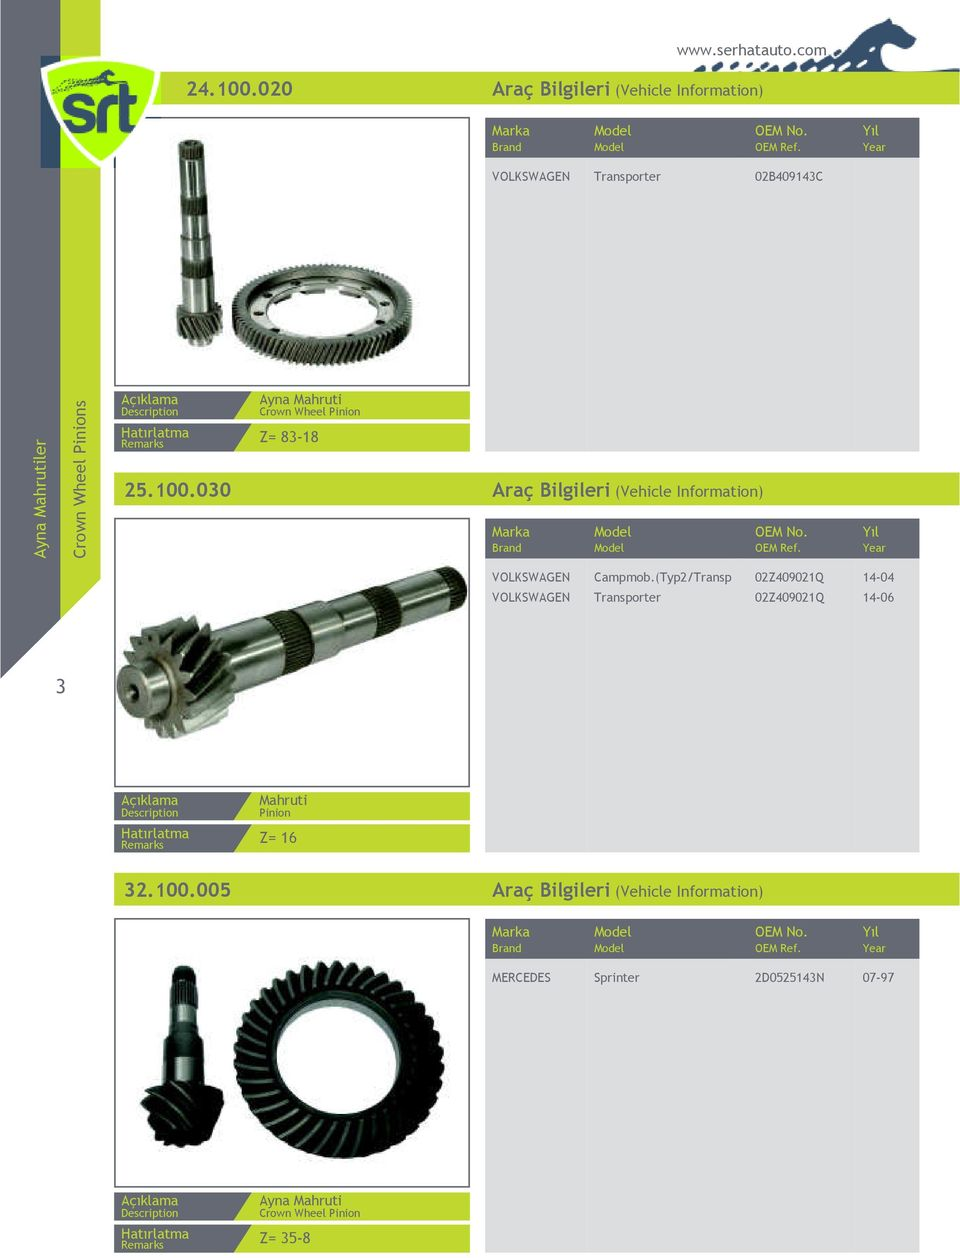 Ayna Mahruti Crown Wheel Pinion Z= 83-18 25.100.030 Araç Bilgileri (Vehicle Information) VOLKSWAGEN Campmob.